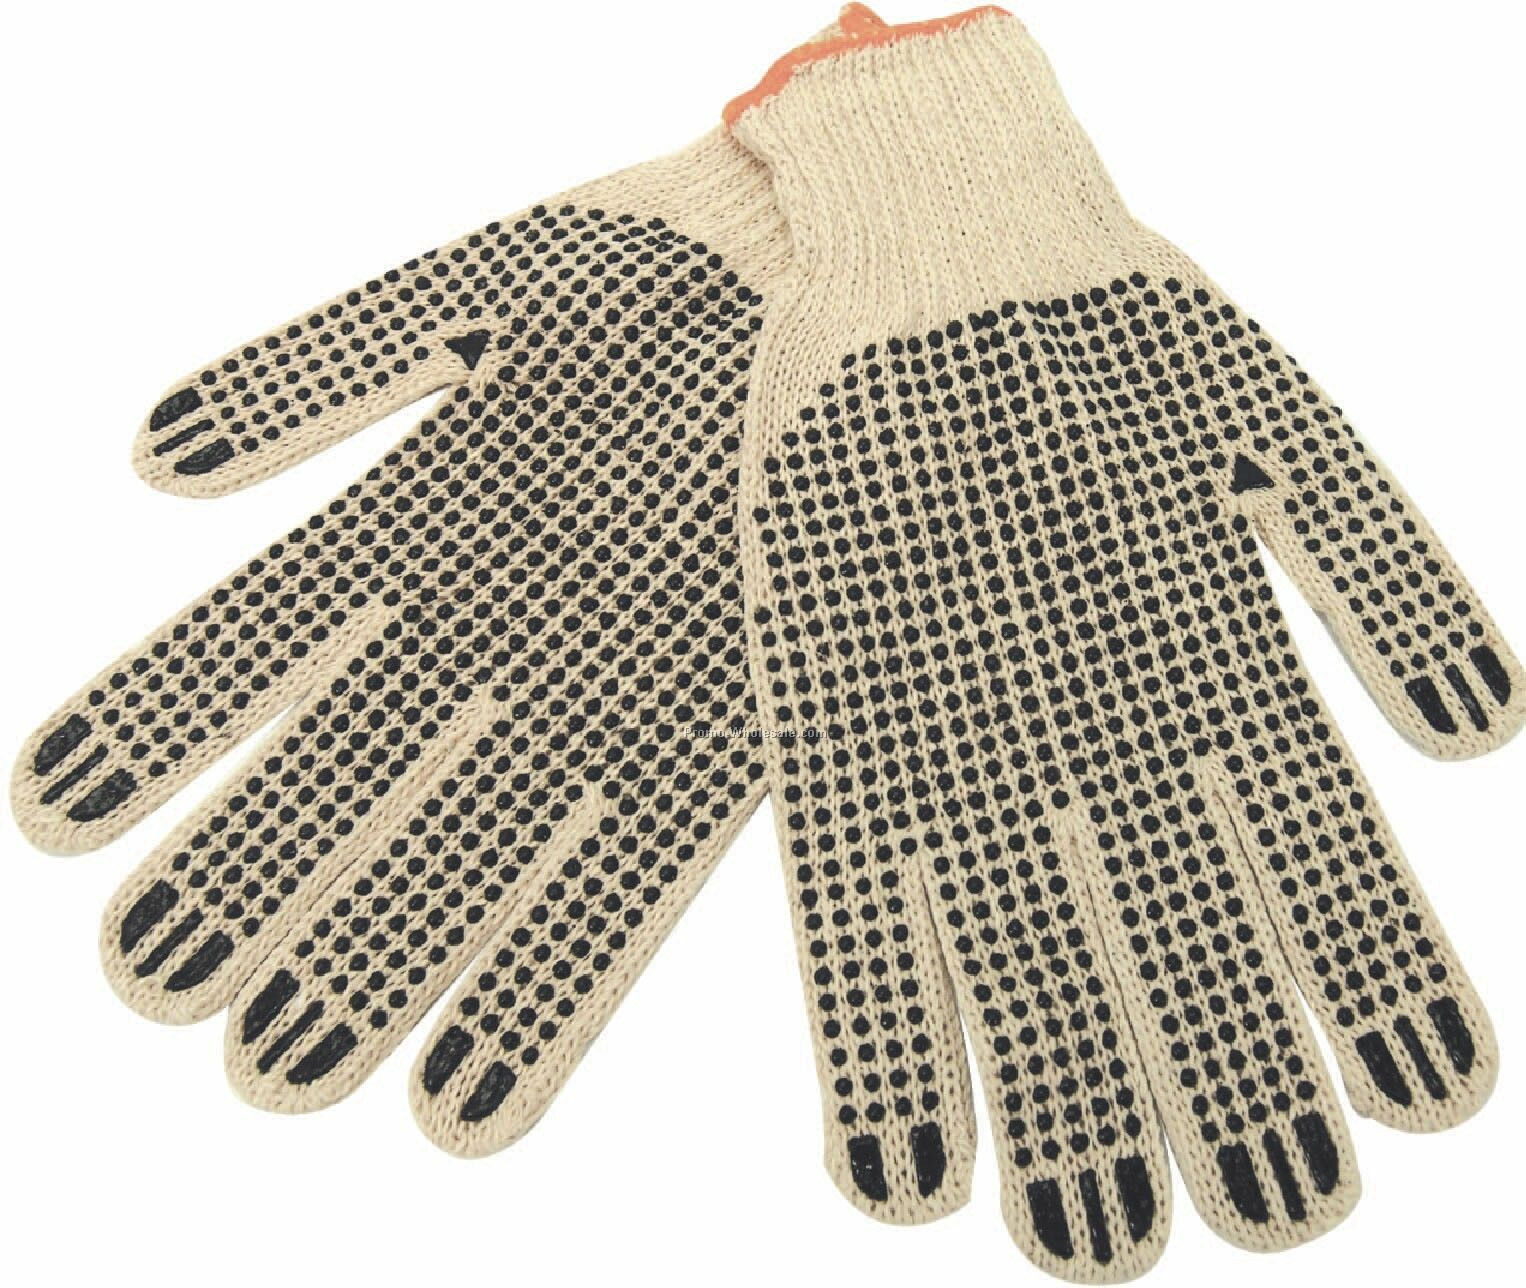 Cotton Work Gloves With Rubber Grip Dots (Blank)